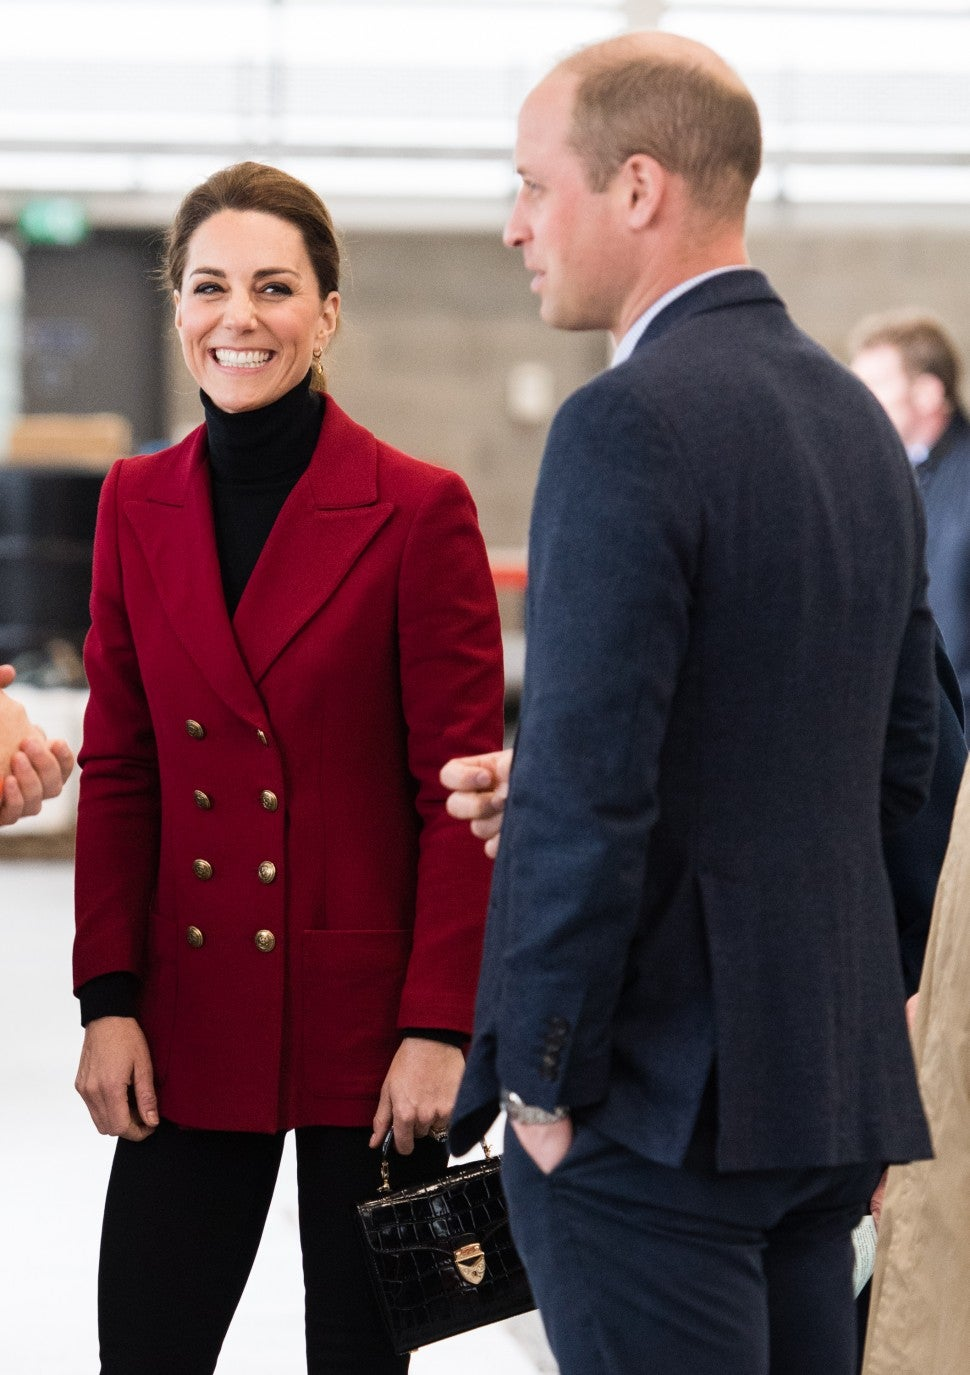 Prince Williamand Kate Middleton visit Caernarfon Coastguard Search and Rescue Helicopter Base during a visit to North Wales on May 08, 2019 in Various Cities, United Kingdom